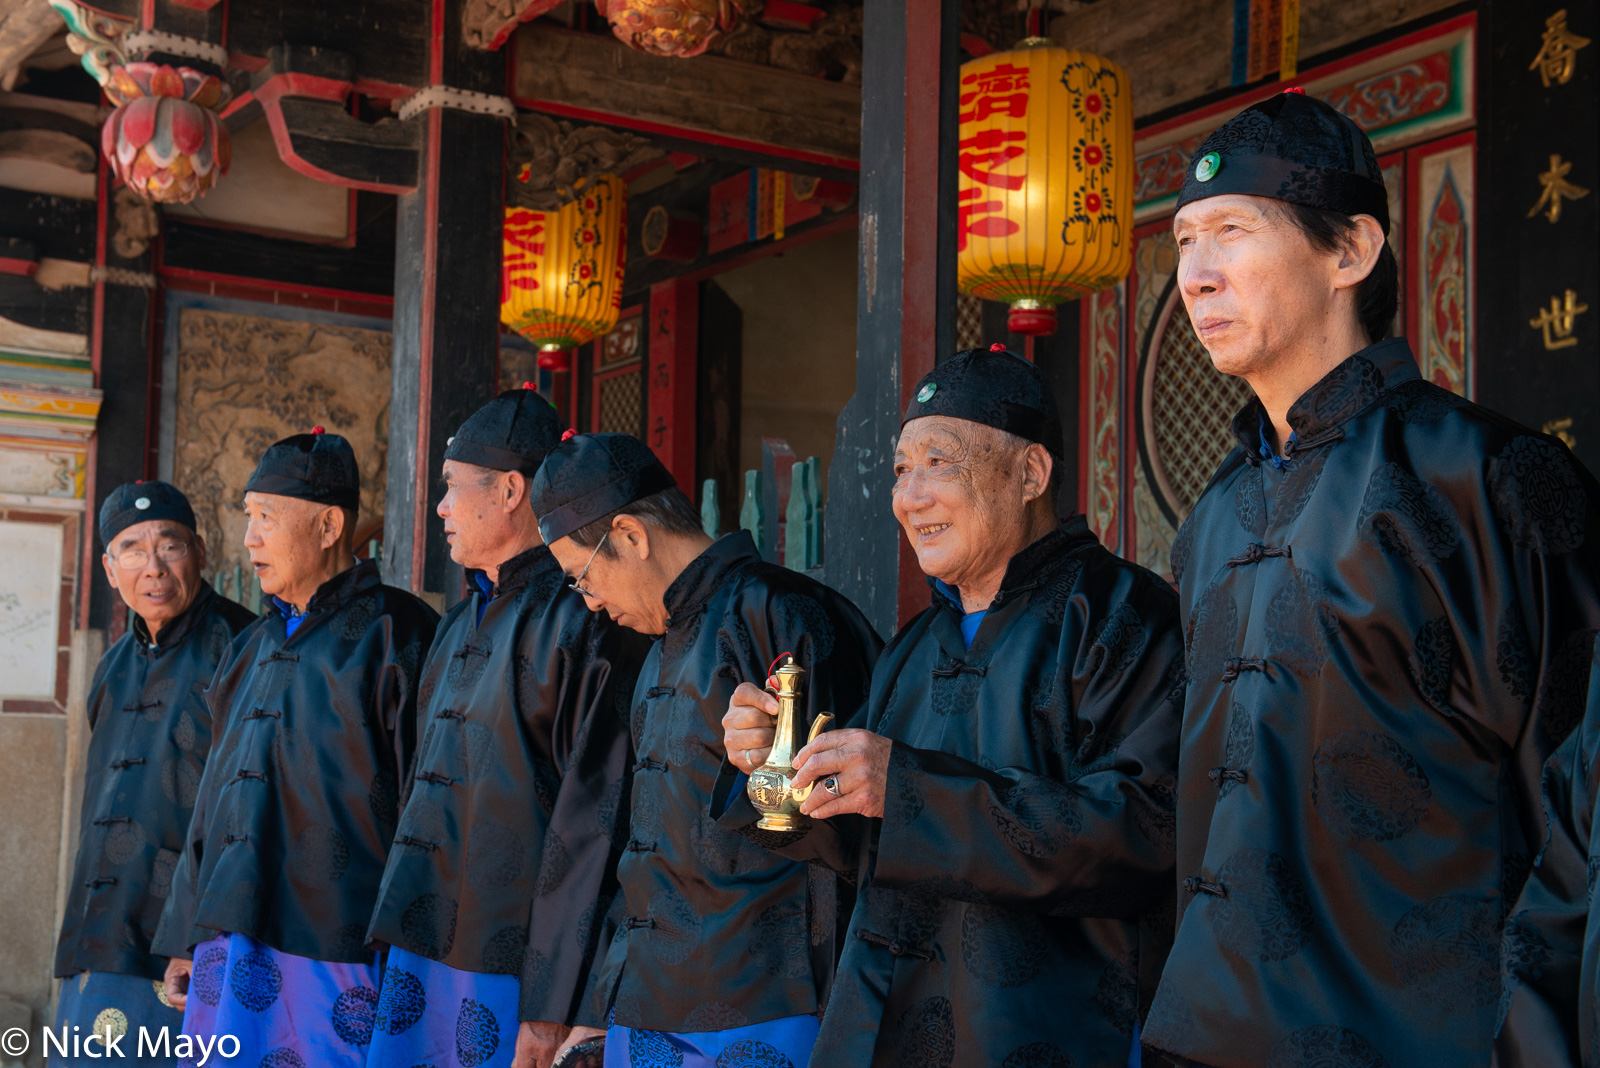 Elders of the Tsai clan participating in a religious ritual at the temple in Qionglin village on Kinmen.